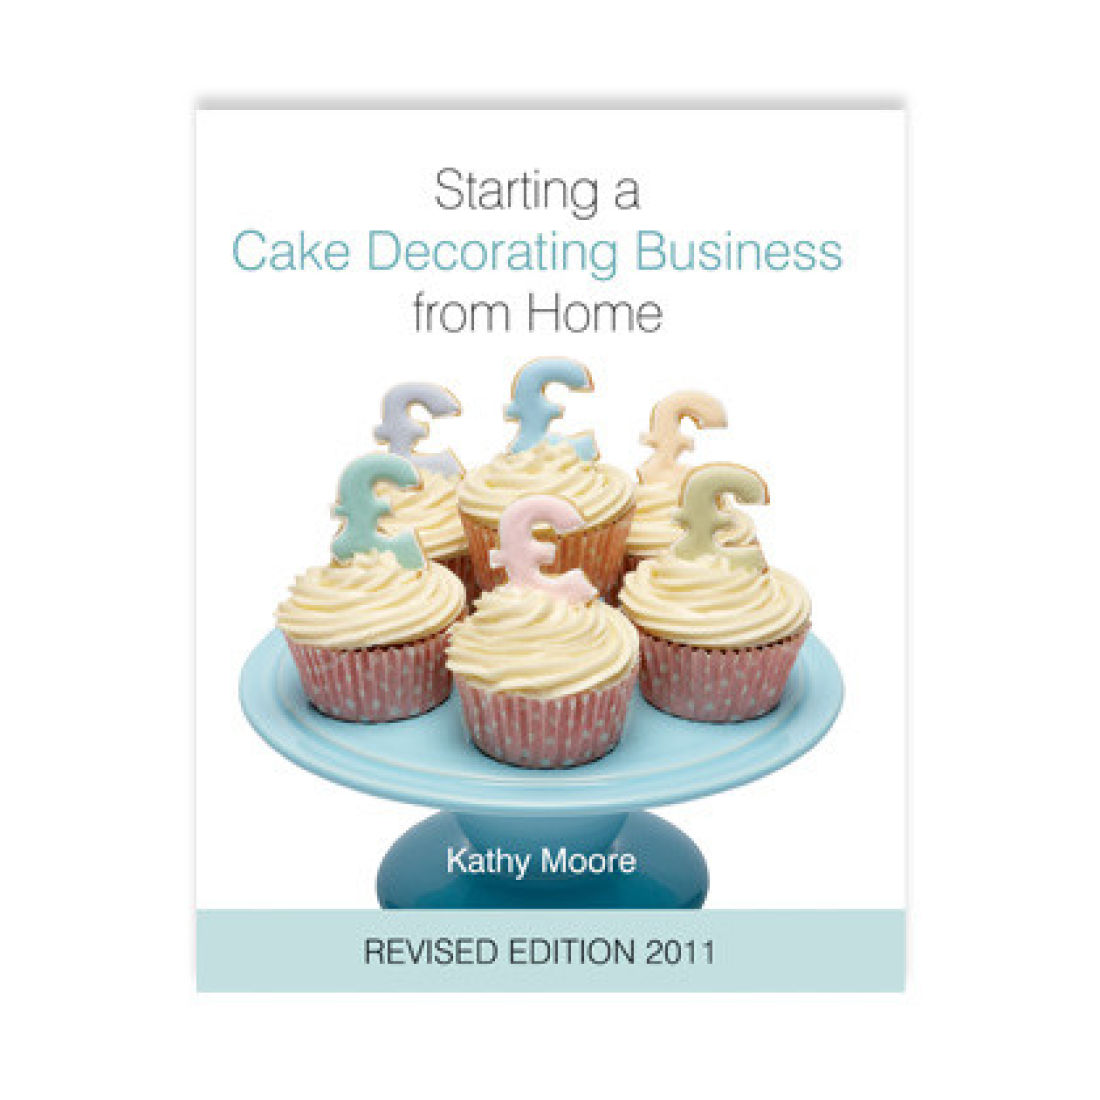 Starting A Cake Decorating Business From Homeby Kathy Moore Author